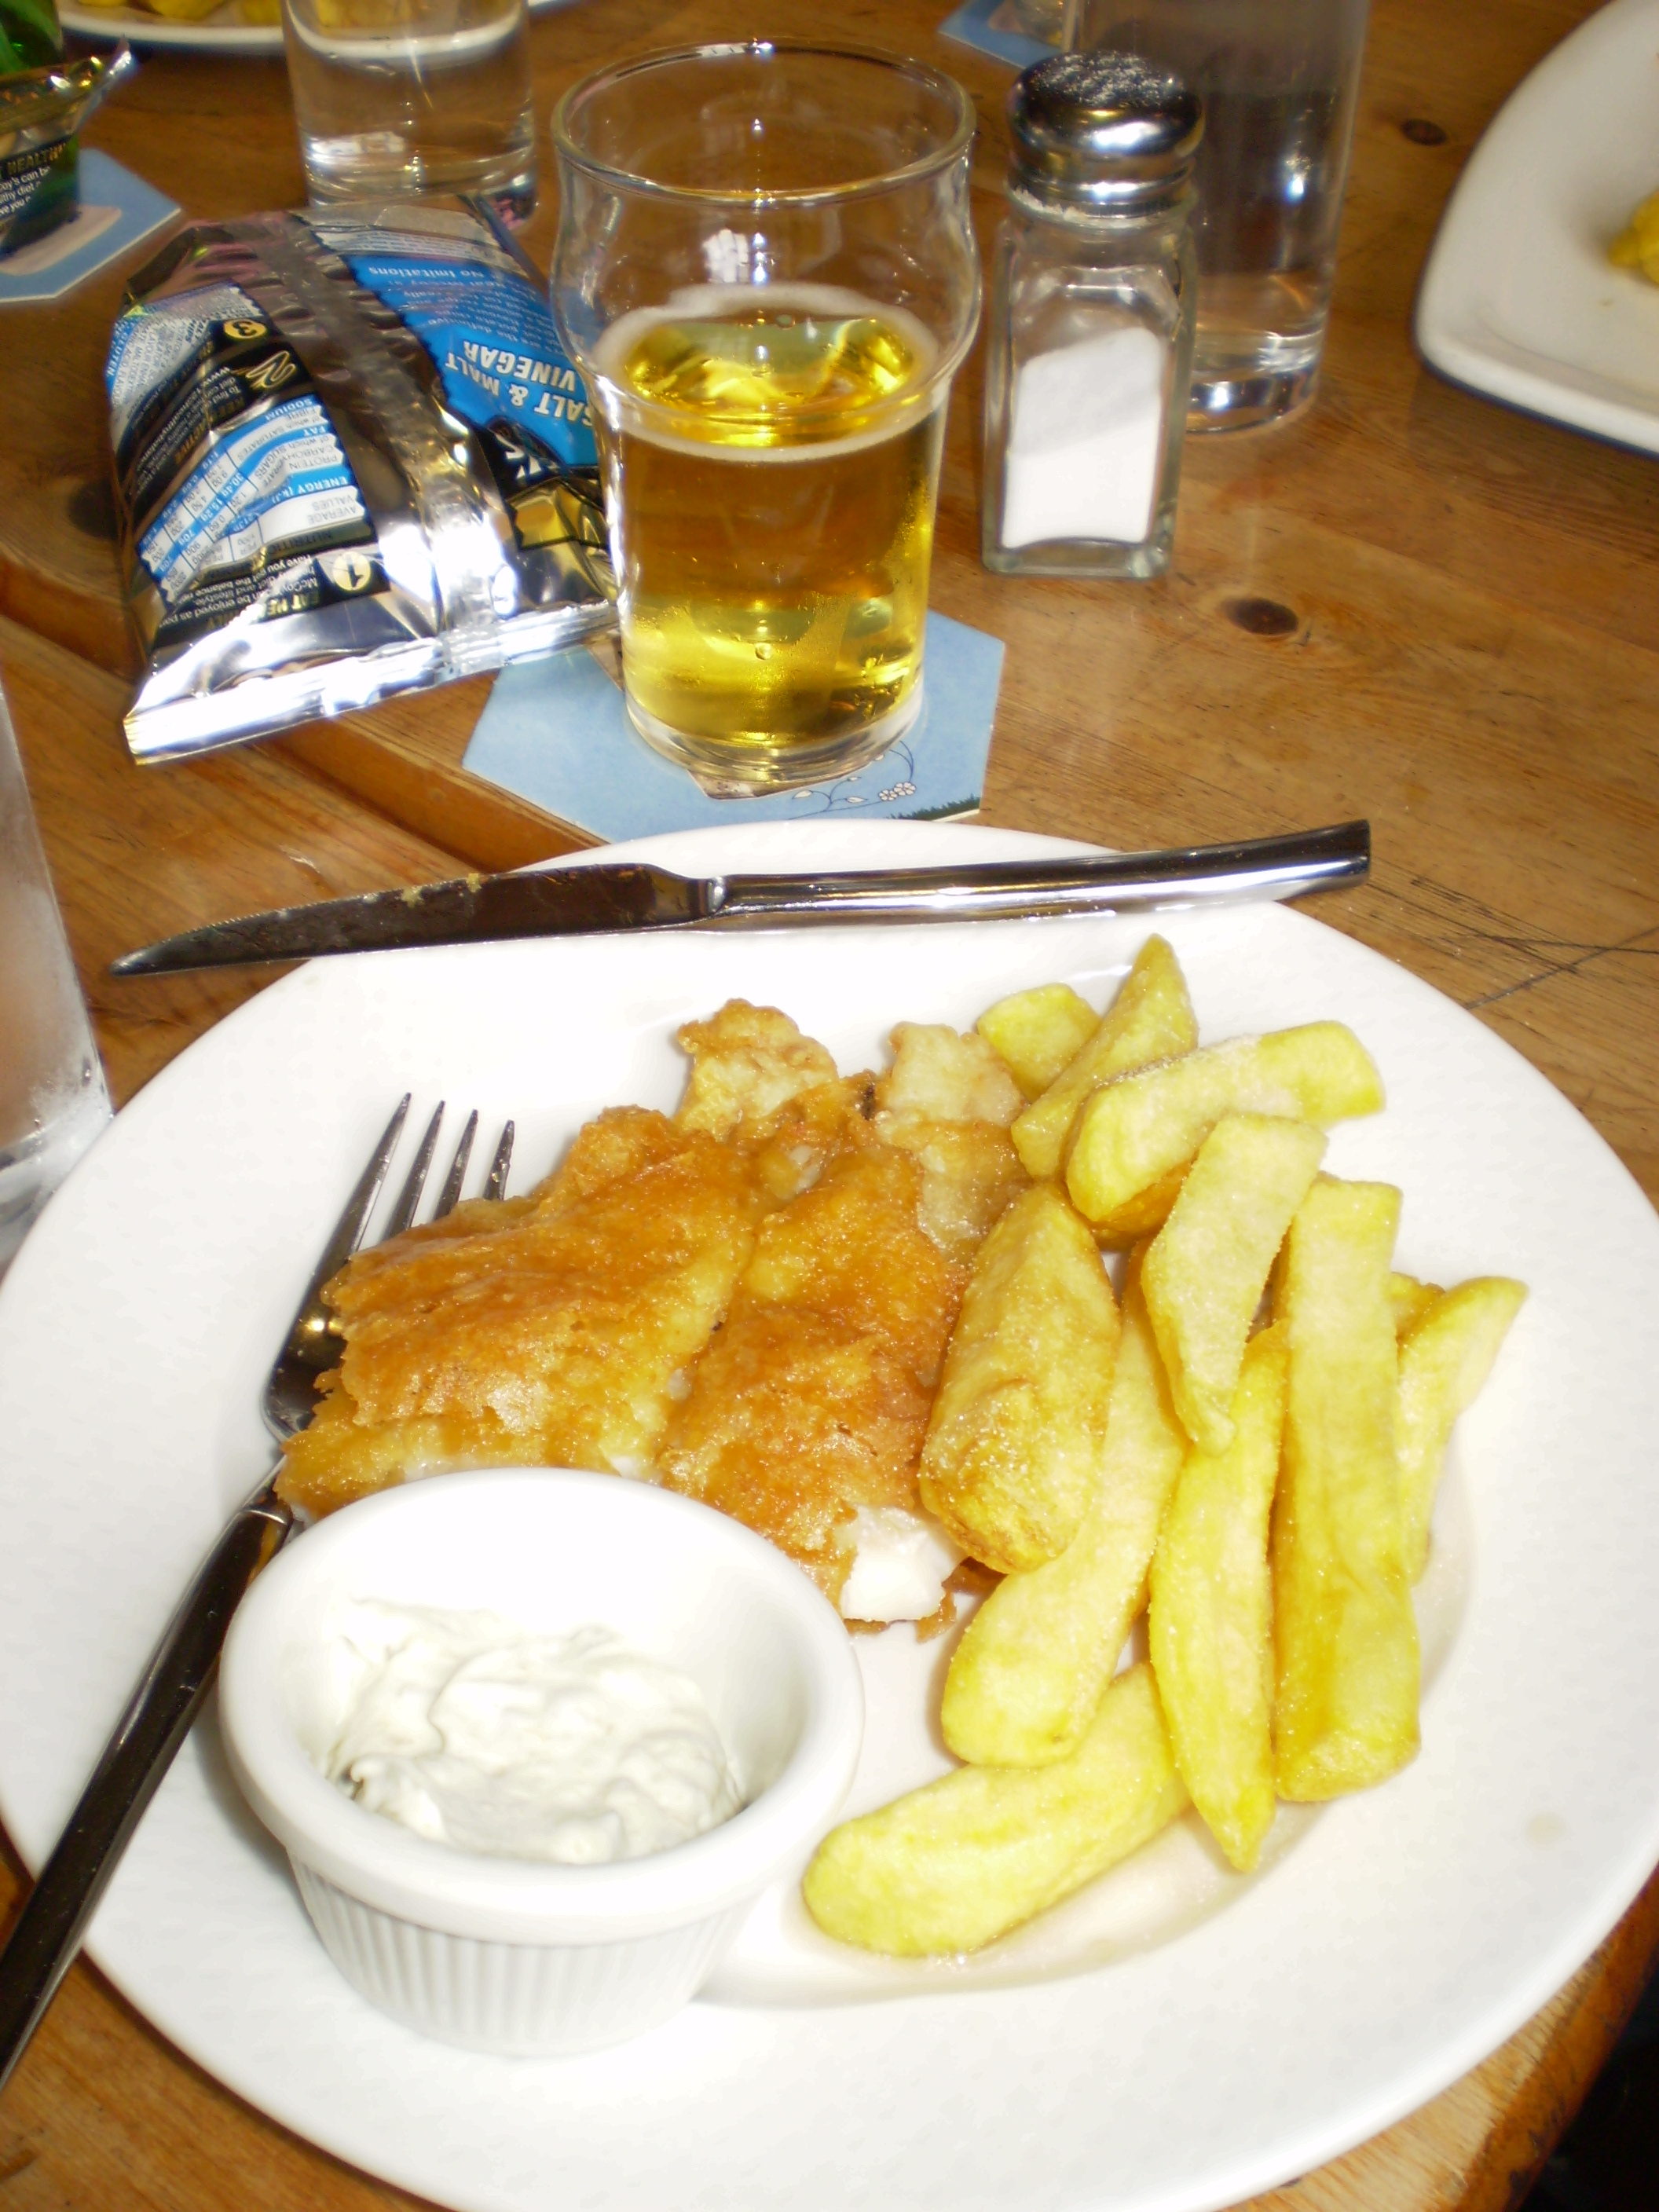 A round white plate with fried fish, french fries, a ramekin of tartar sauce with a glass of beer at the top of the plate.